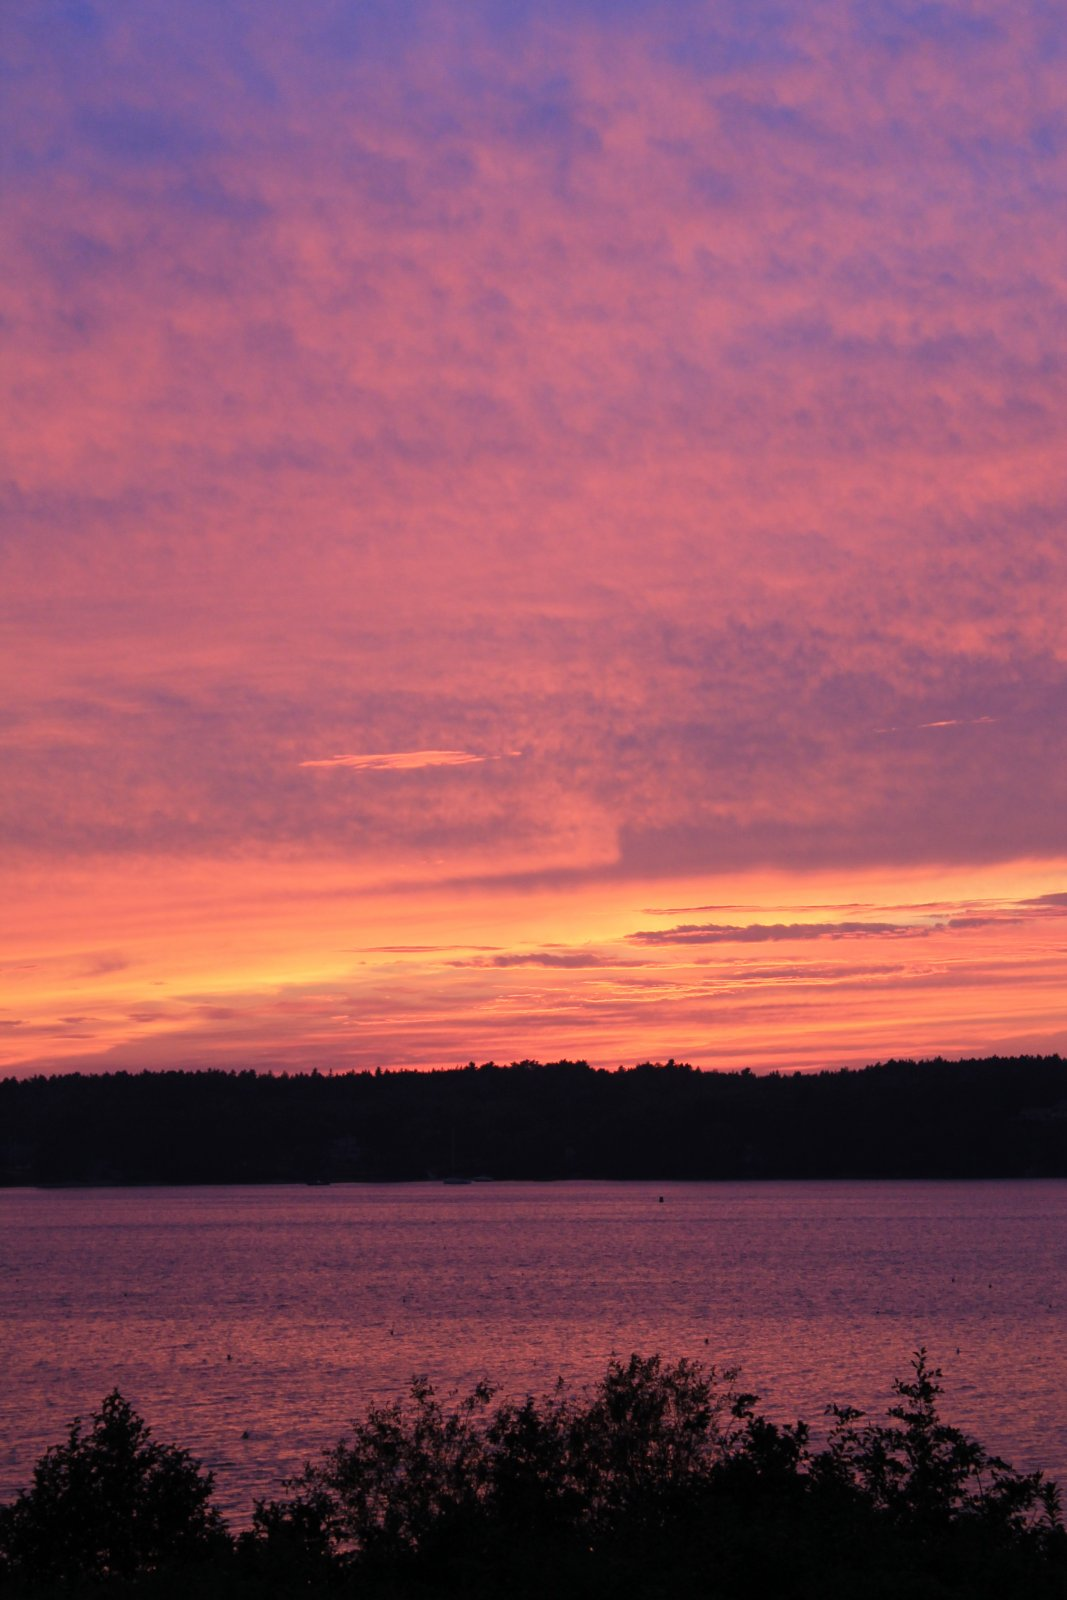 Click image for larger version  Name:Orr's Island Sunset 030.jpg Views:91 Size:172.3 KB ID:193581